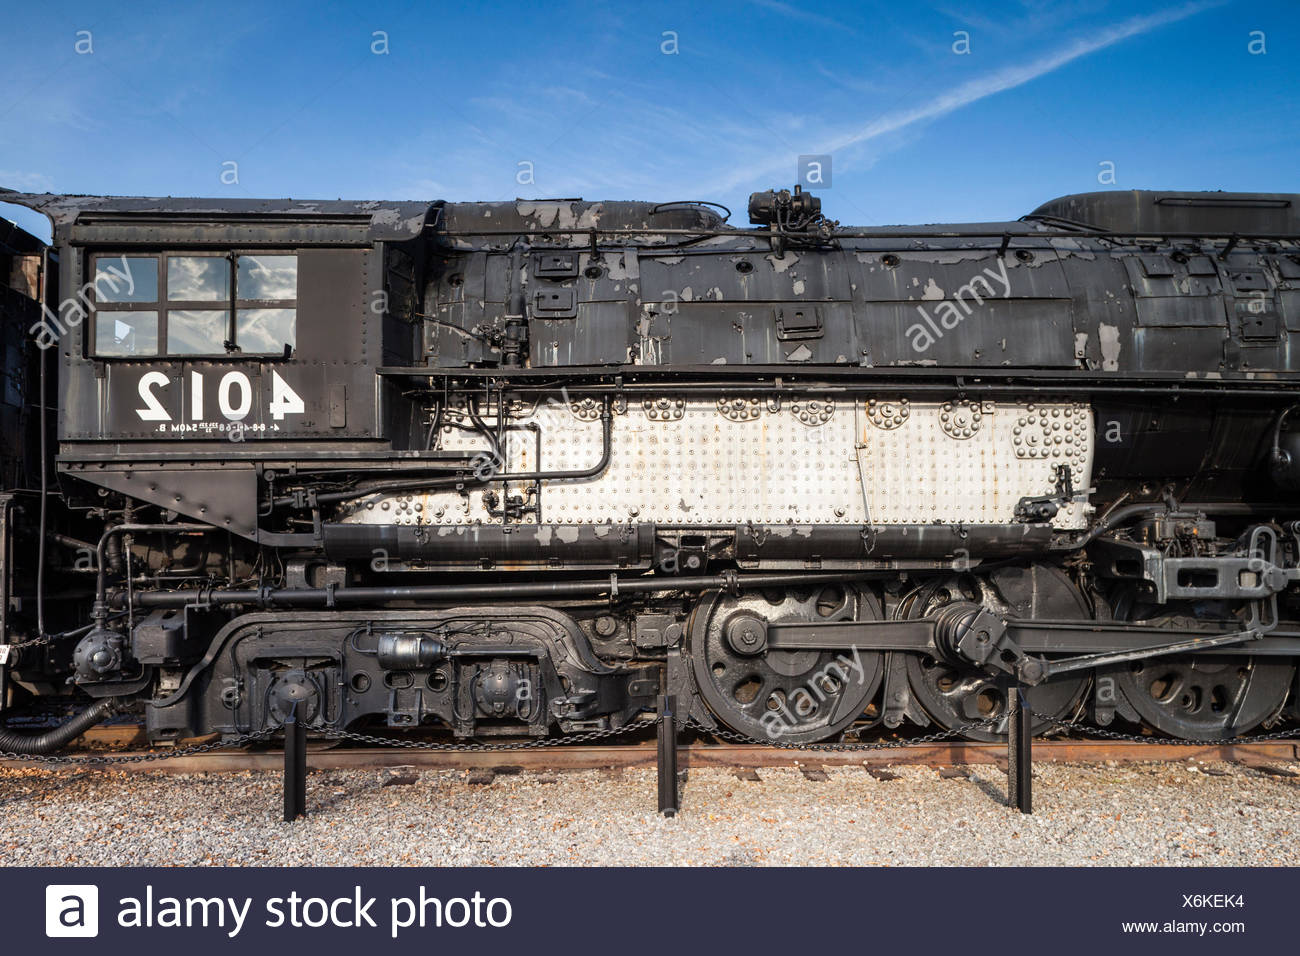 USA, Pennsylvania, Scranton,  Steamtown National Historic Site, Union Pacifc Locomotive 4012, one of the world's largest steam locomotives,  1.25 million pounds in weight - Stock Image